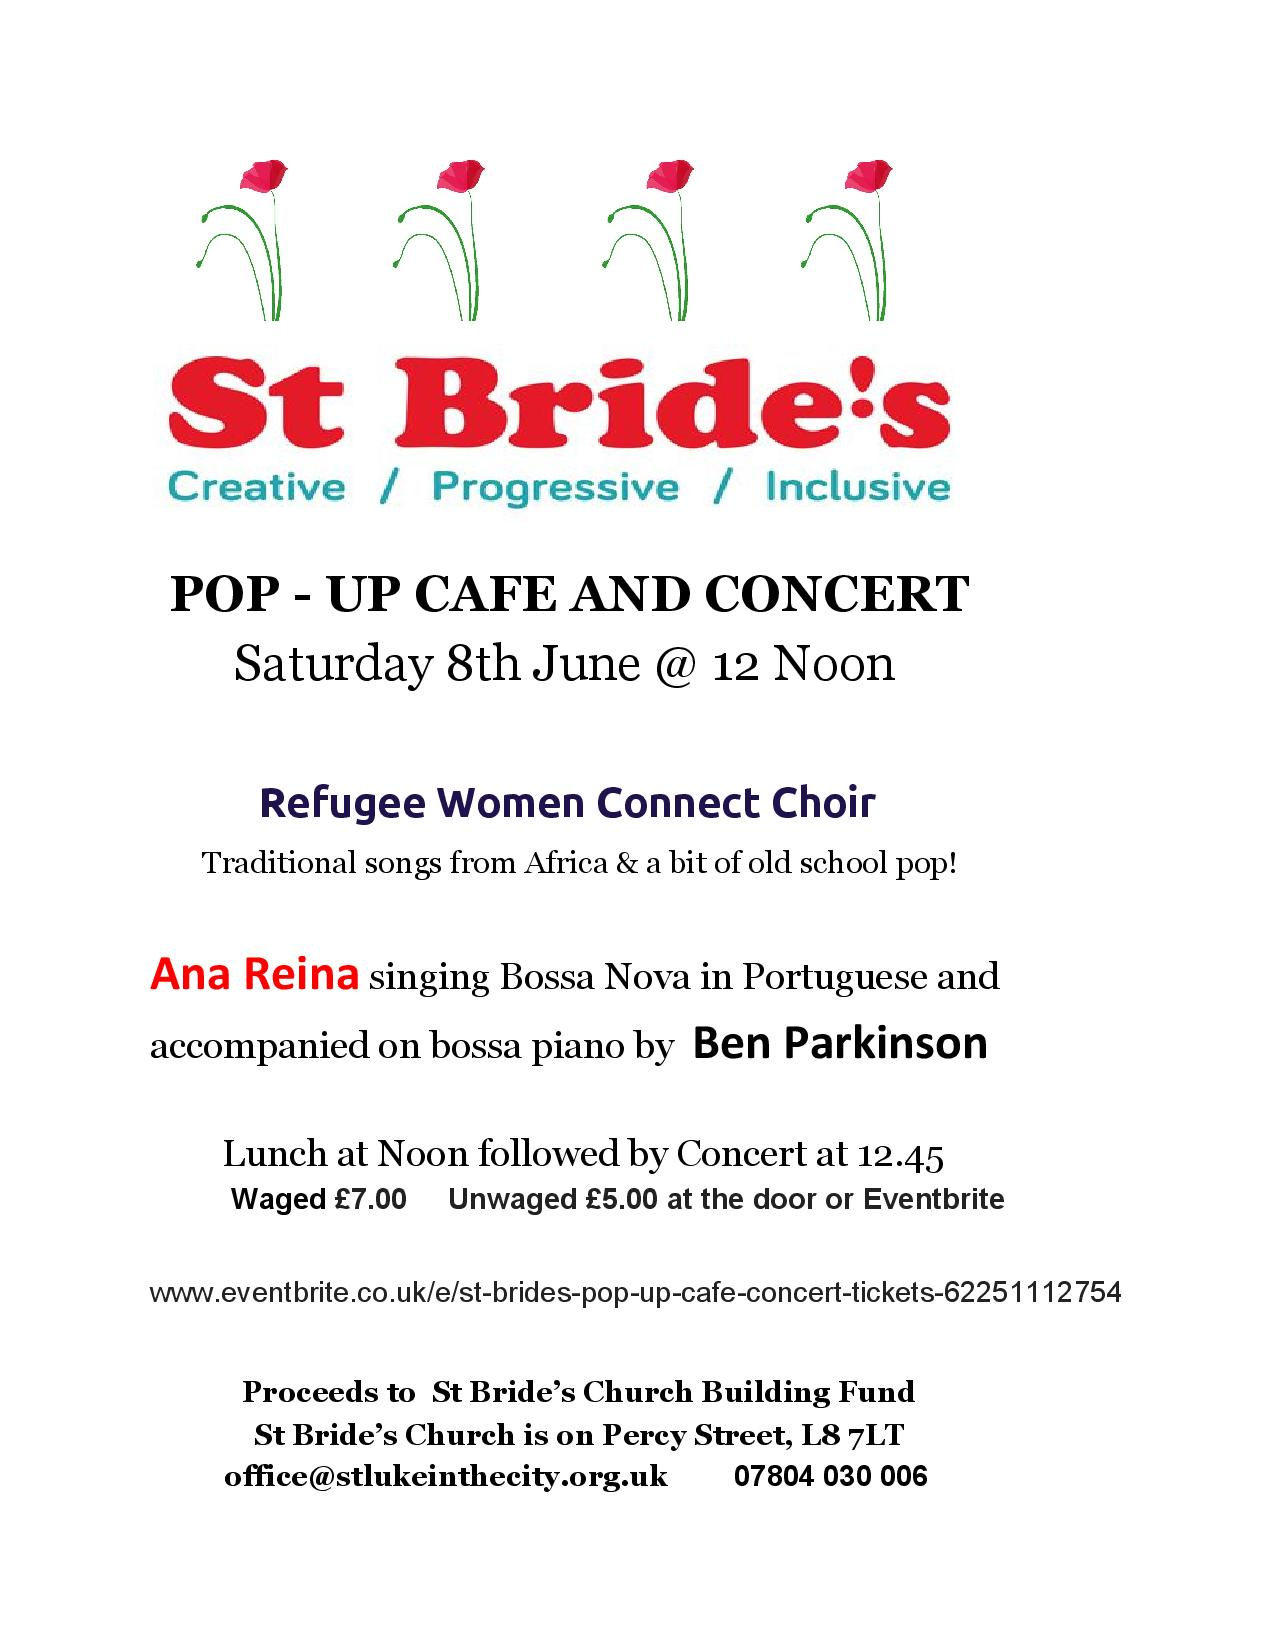 St Bride's Pop Up Cafe and Concert — St Bride's Liverpool